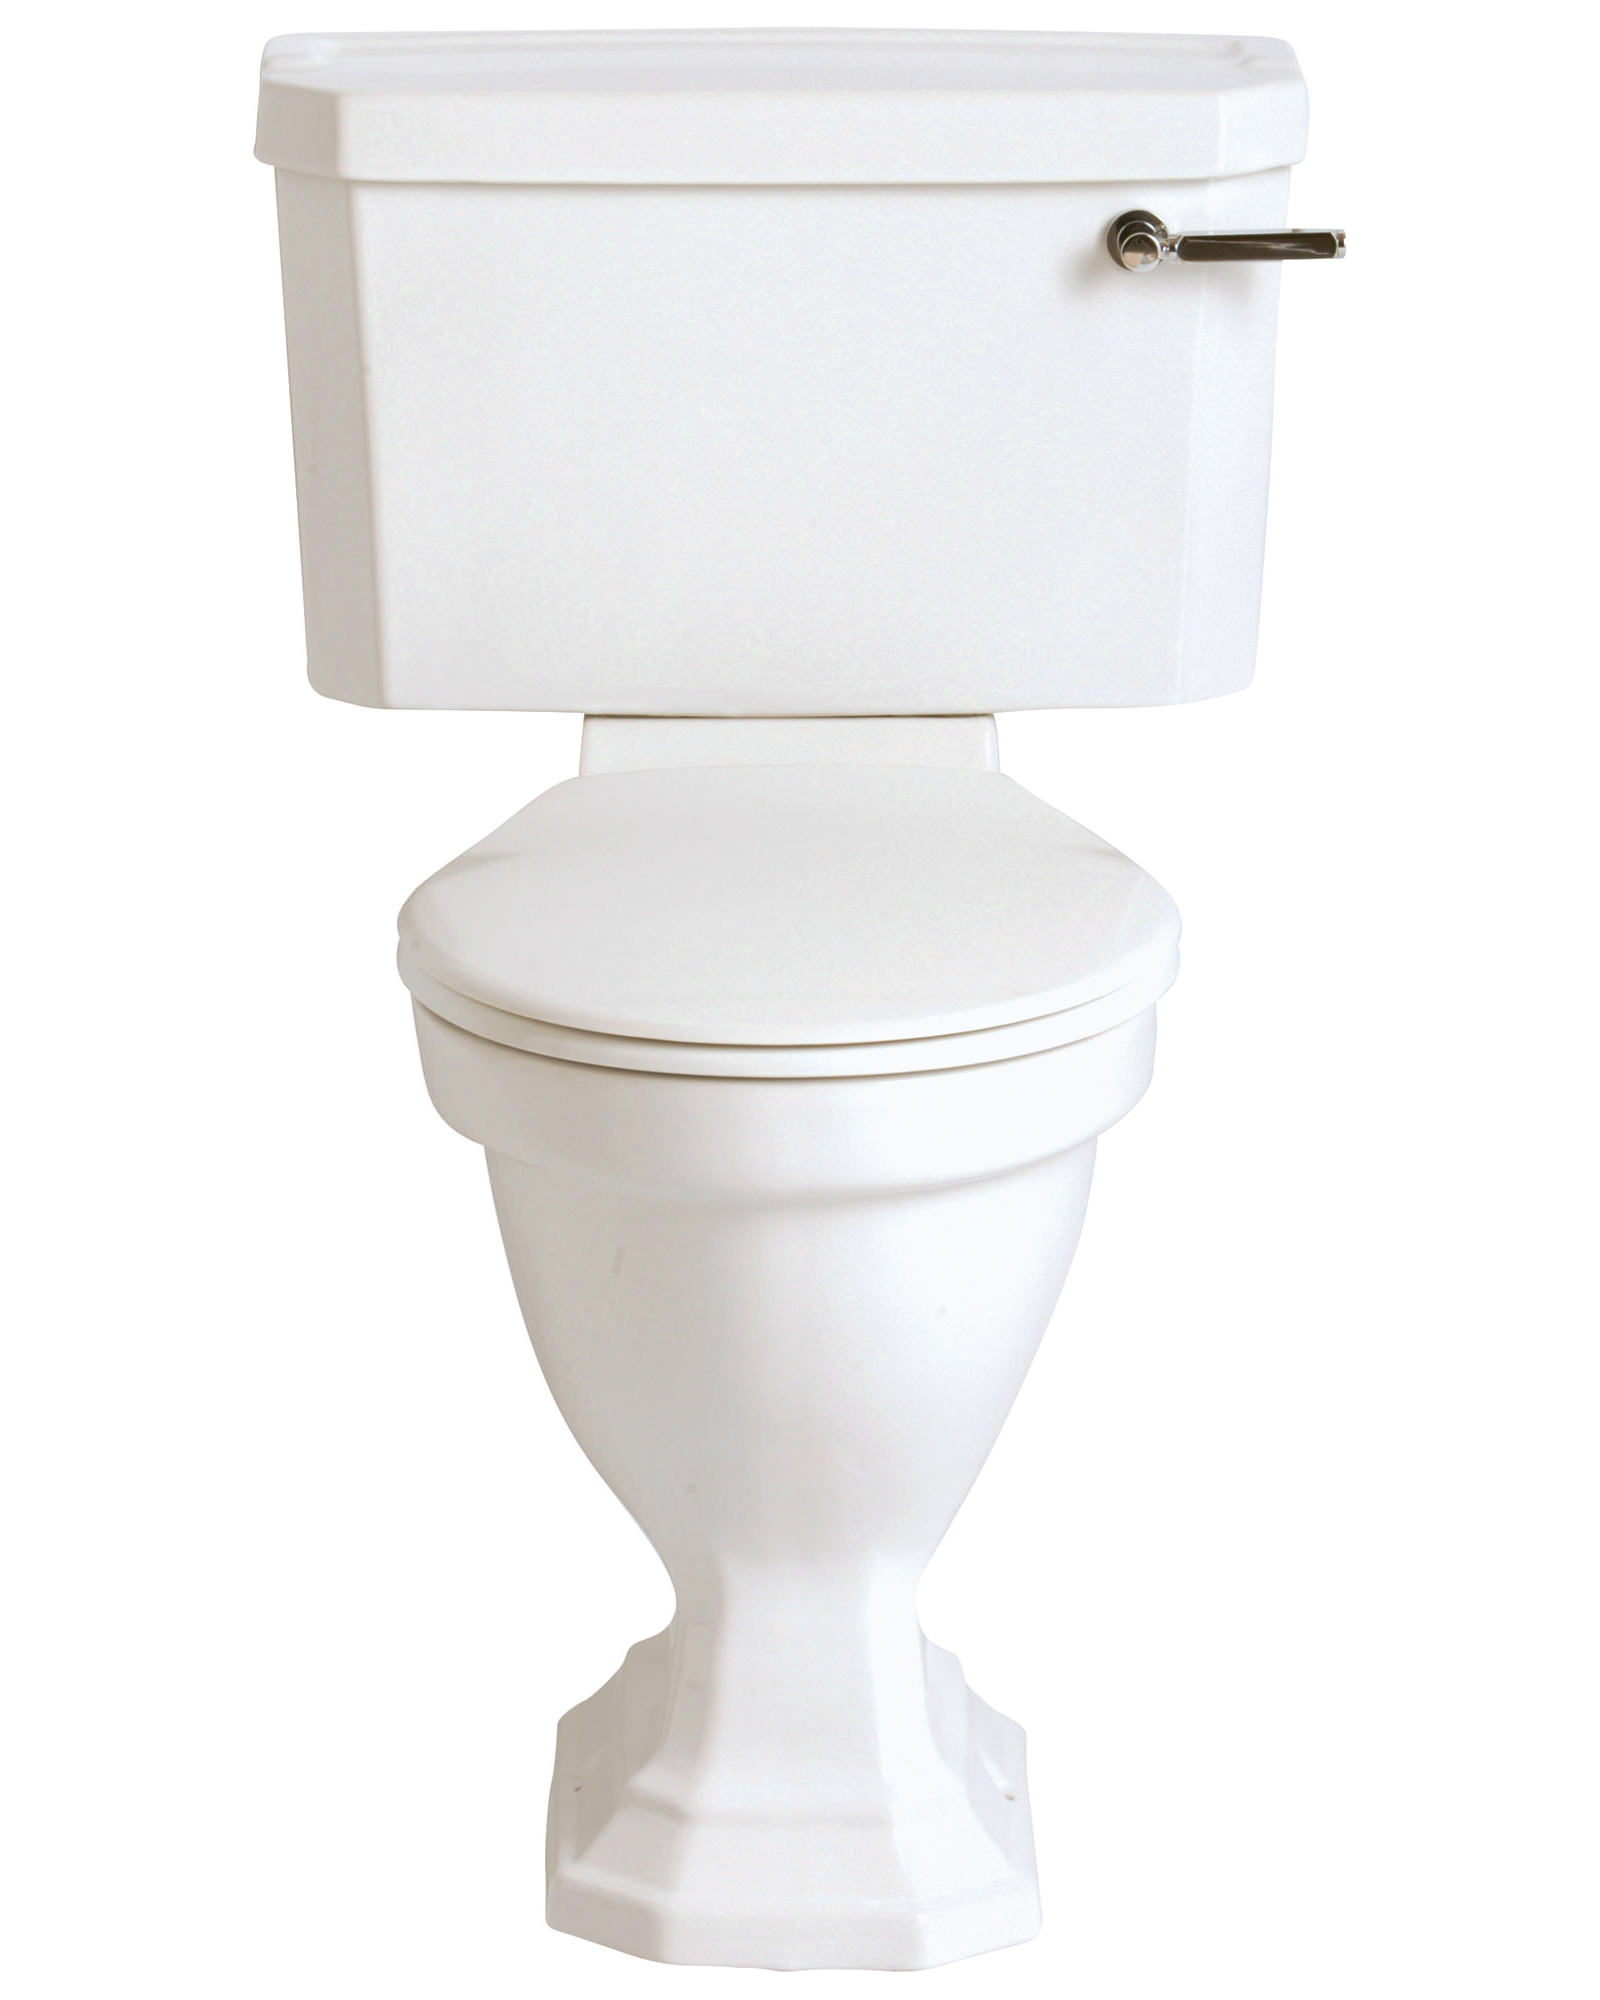 Heritage granley deco comfort height wc and landscape cistern 680 - Deco toilet wc ...